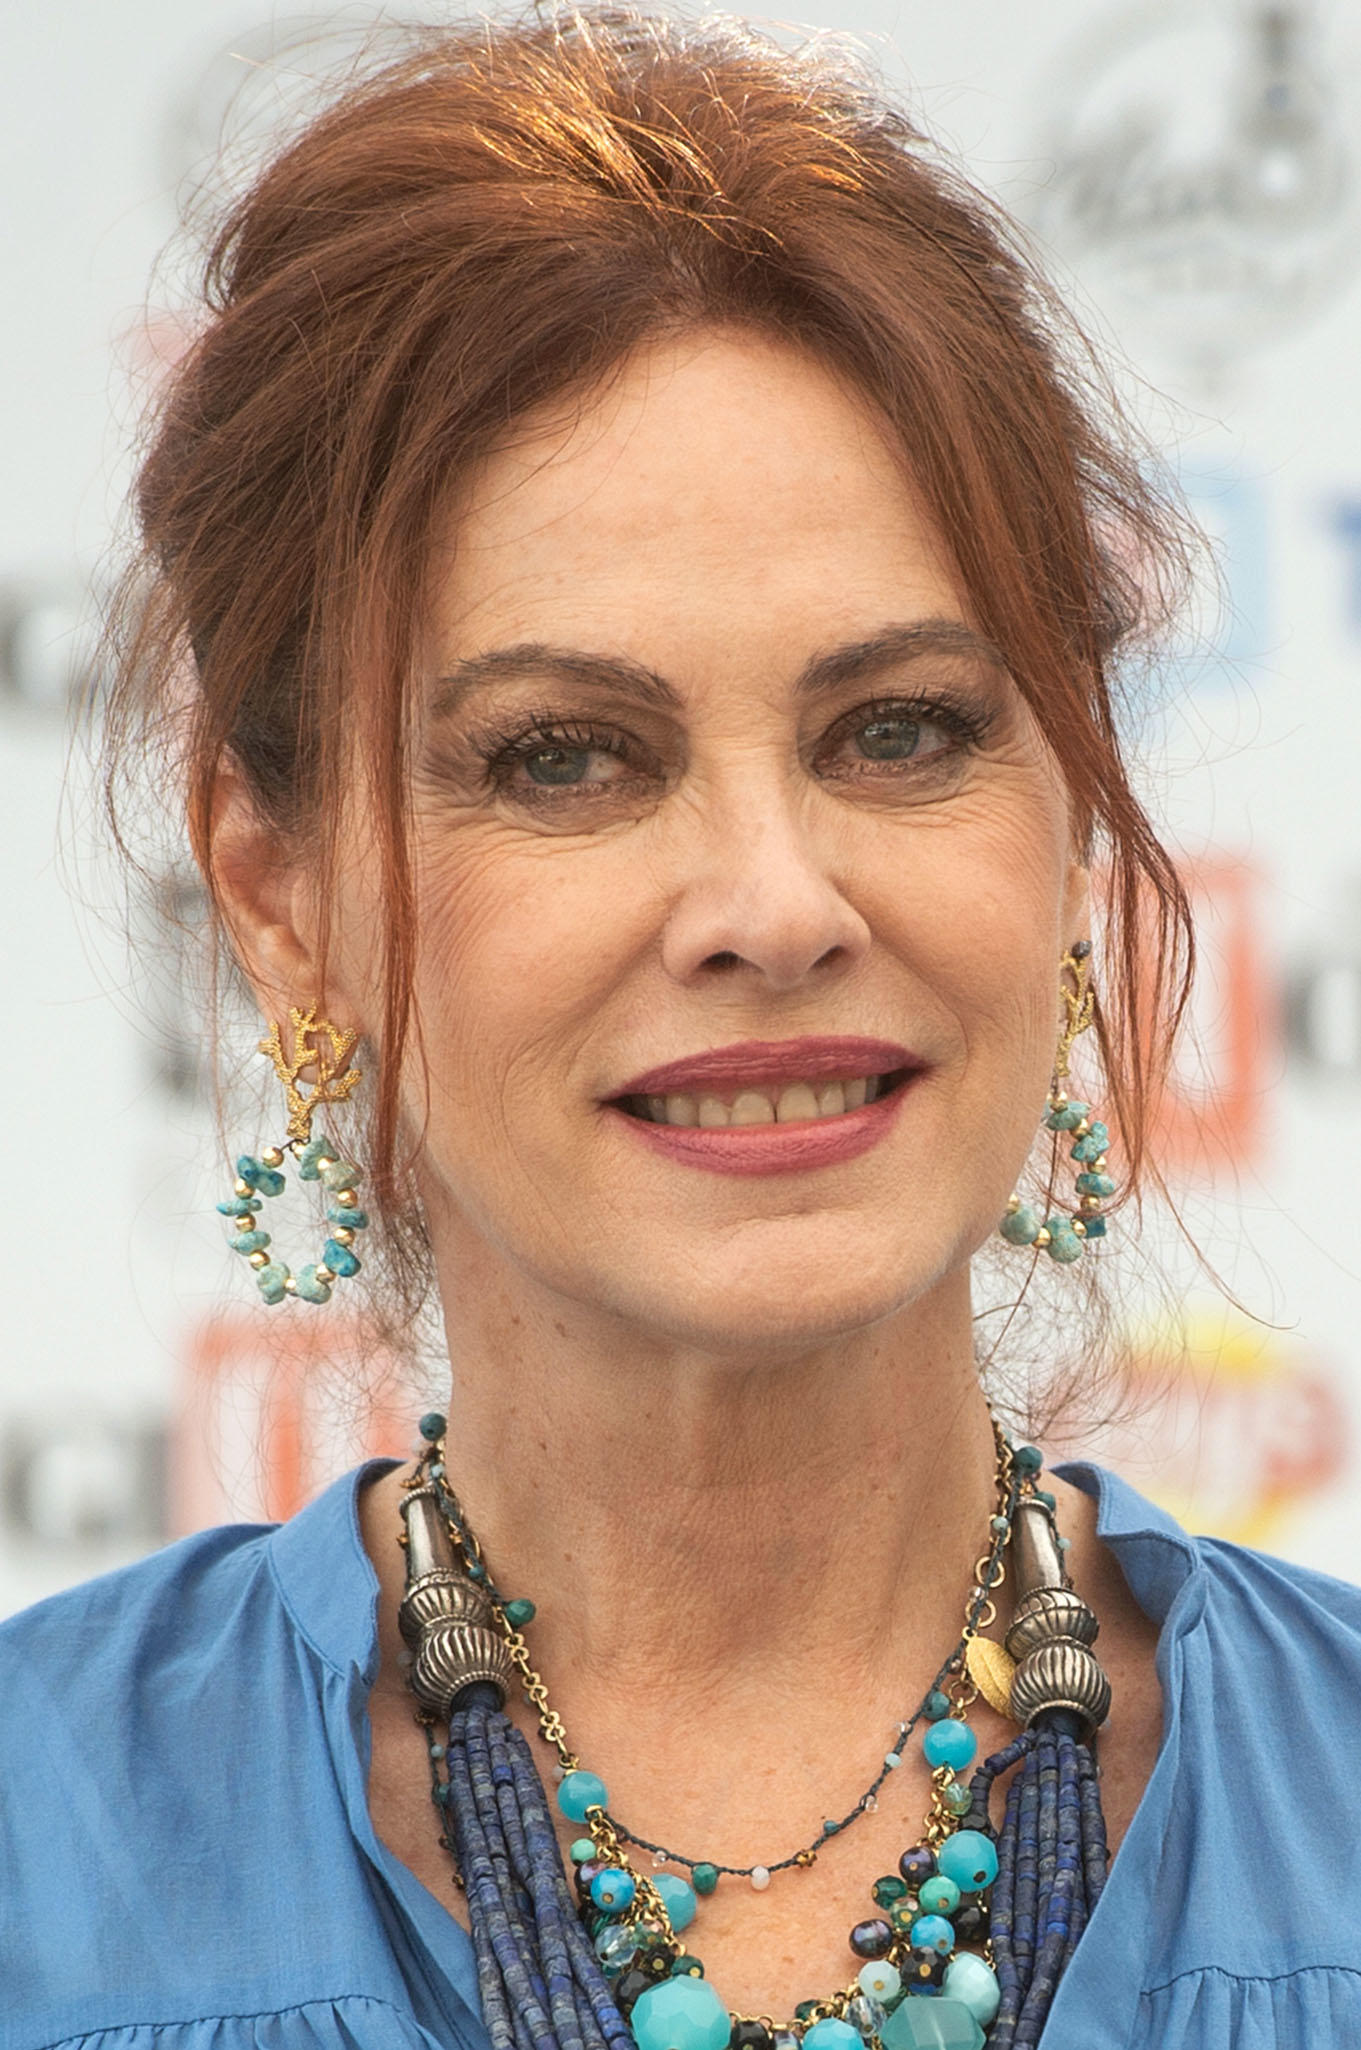 Elena Sofia Ricci during the Giffoni Film Festival 2019.